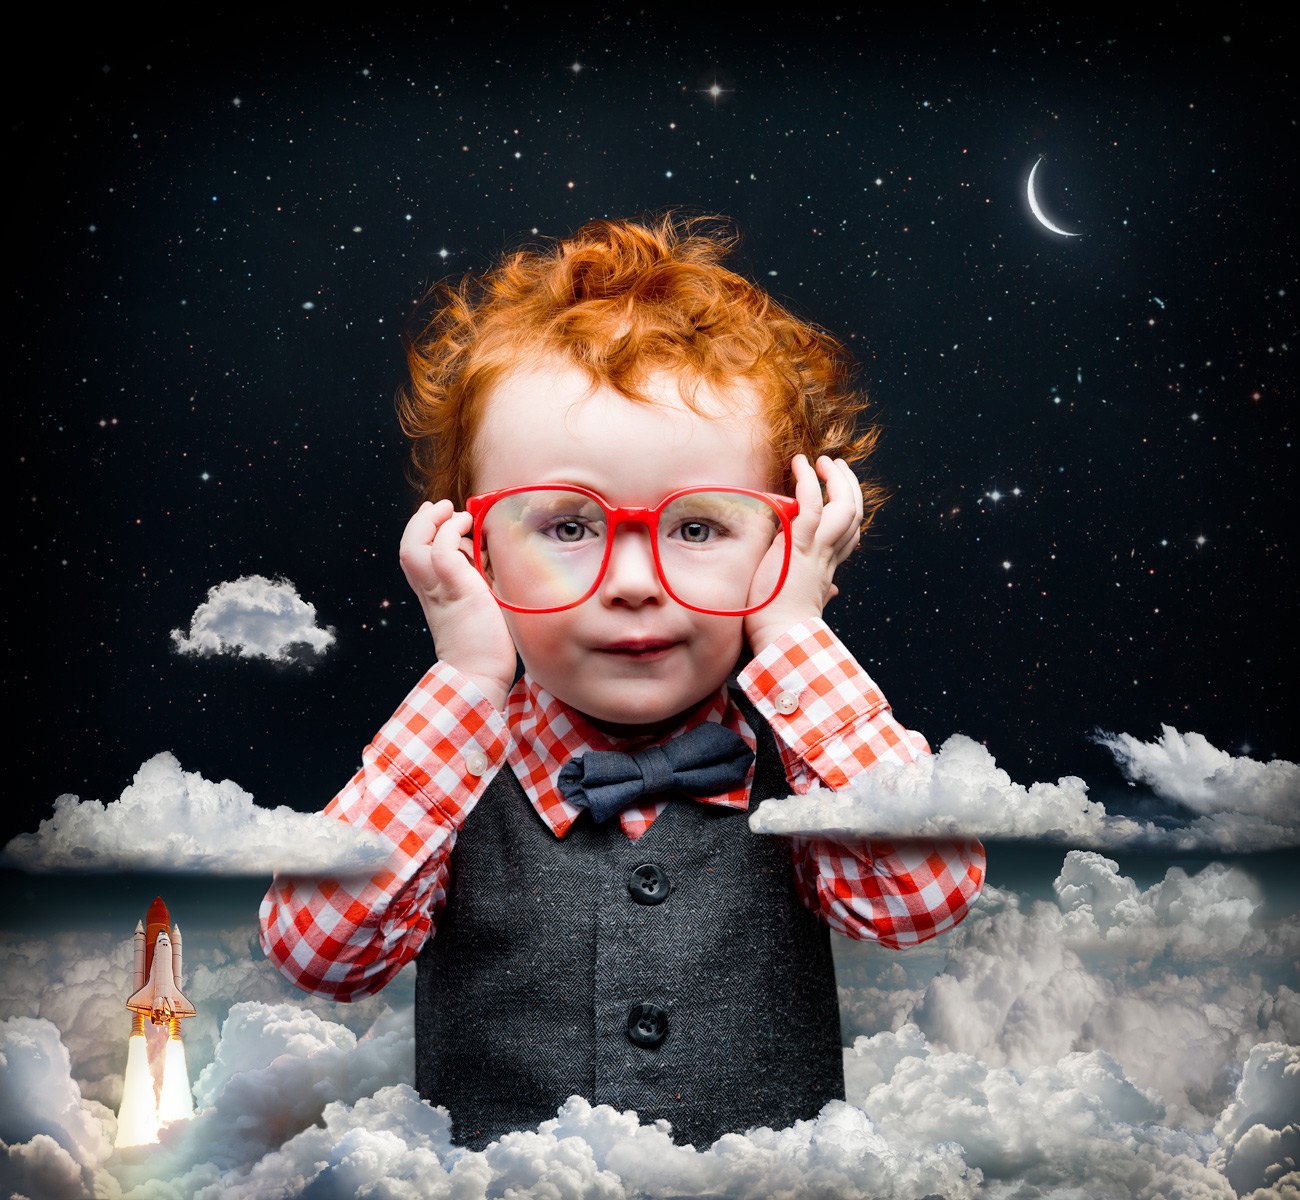 Lennox the red head goes into the upper atmosphere with Big red glasses